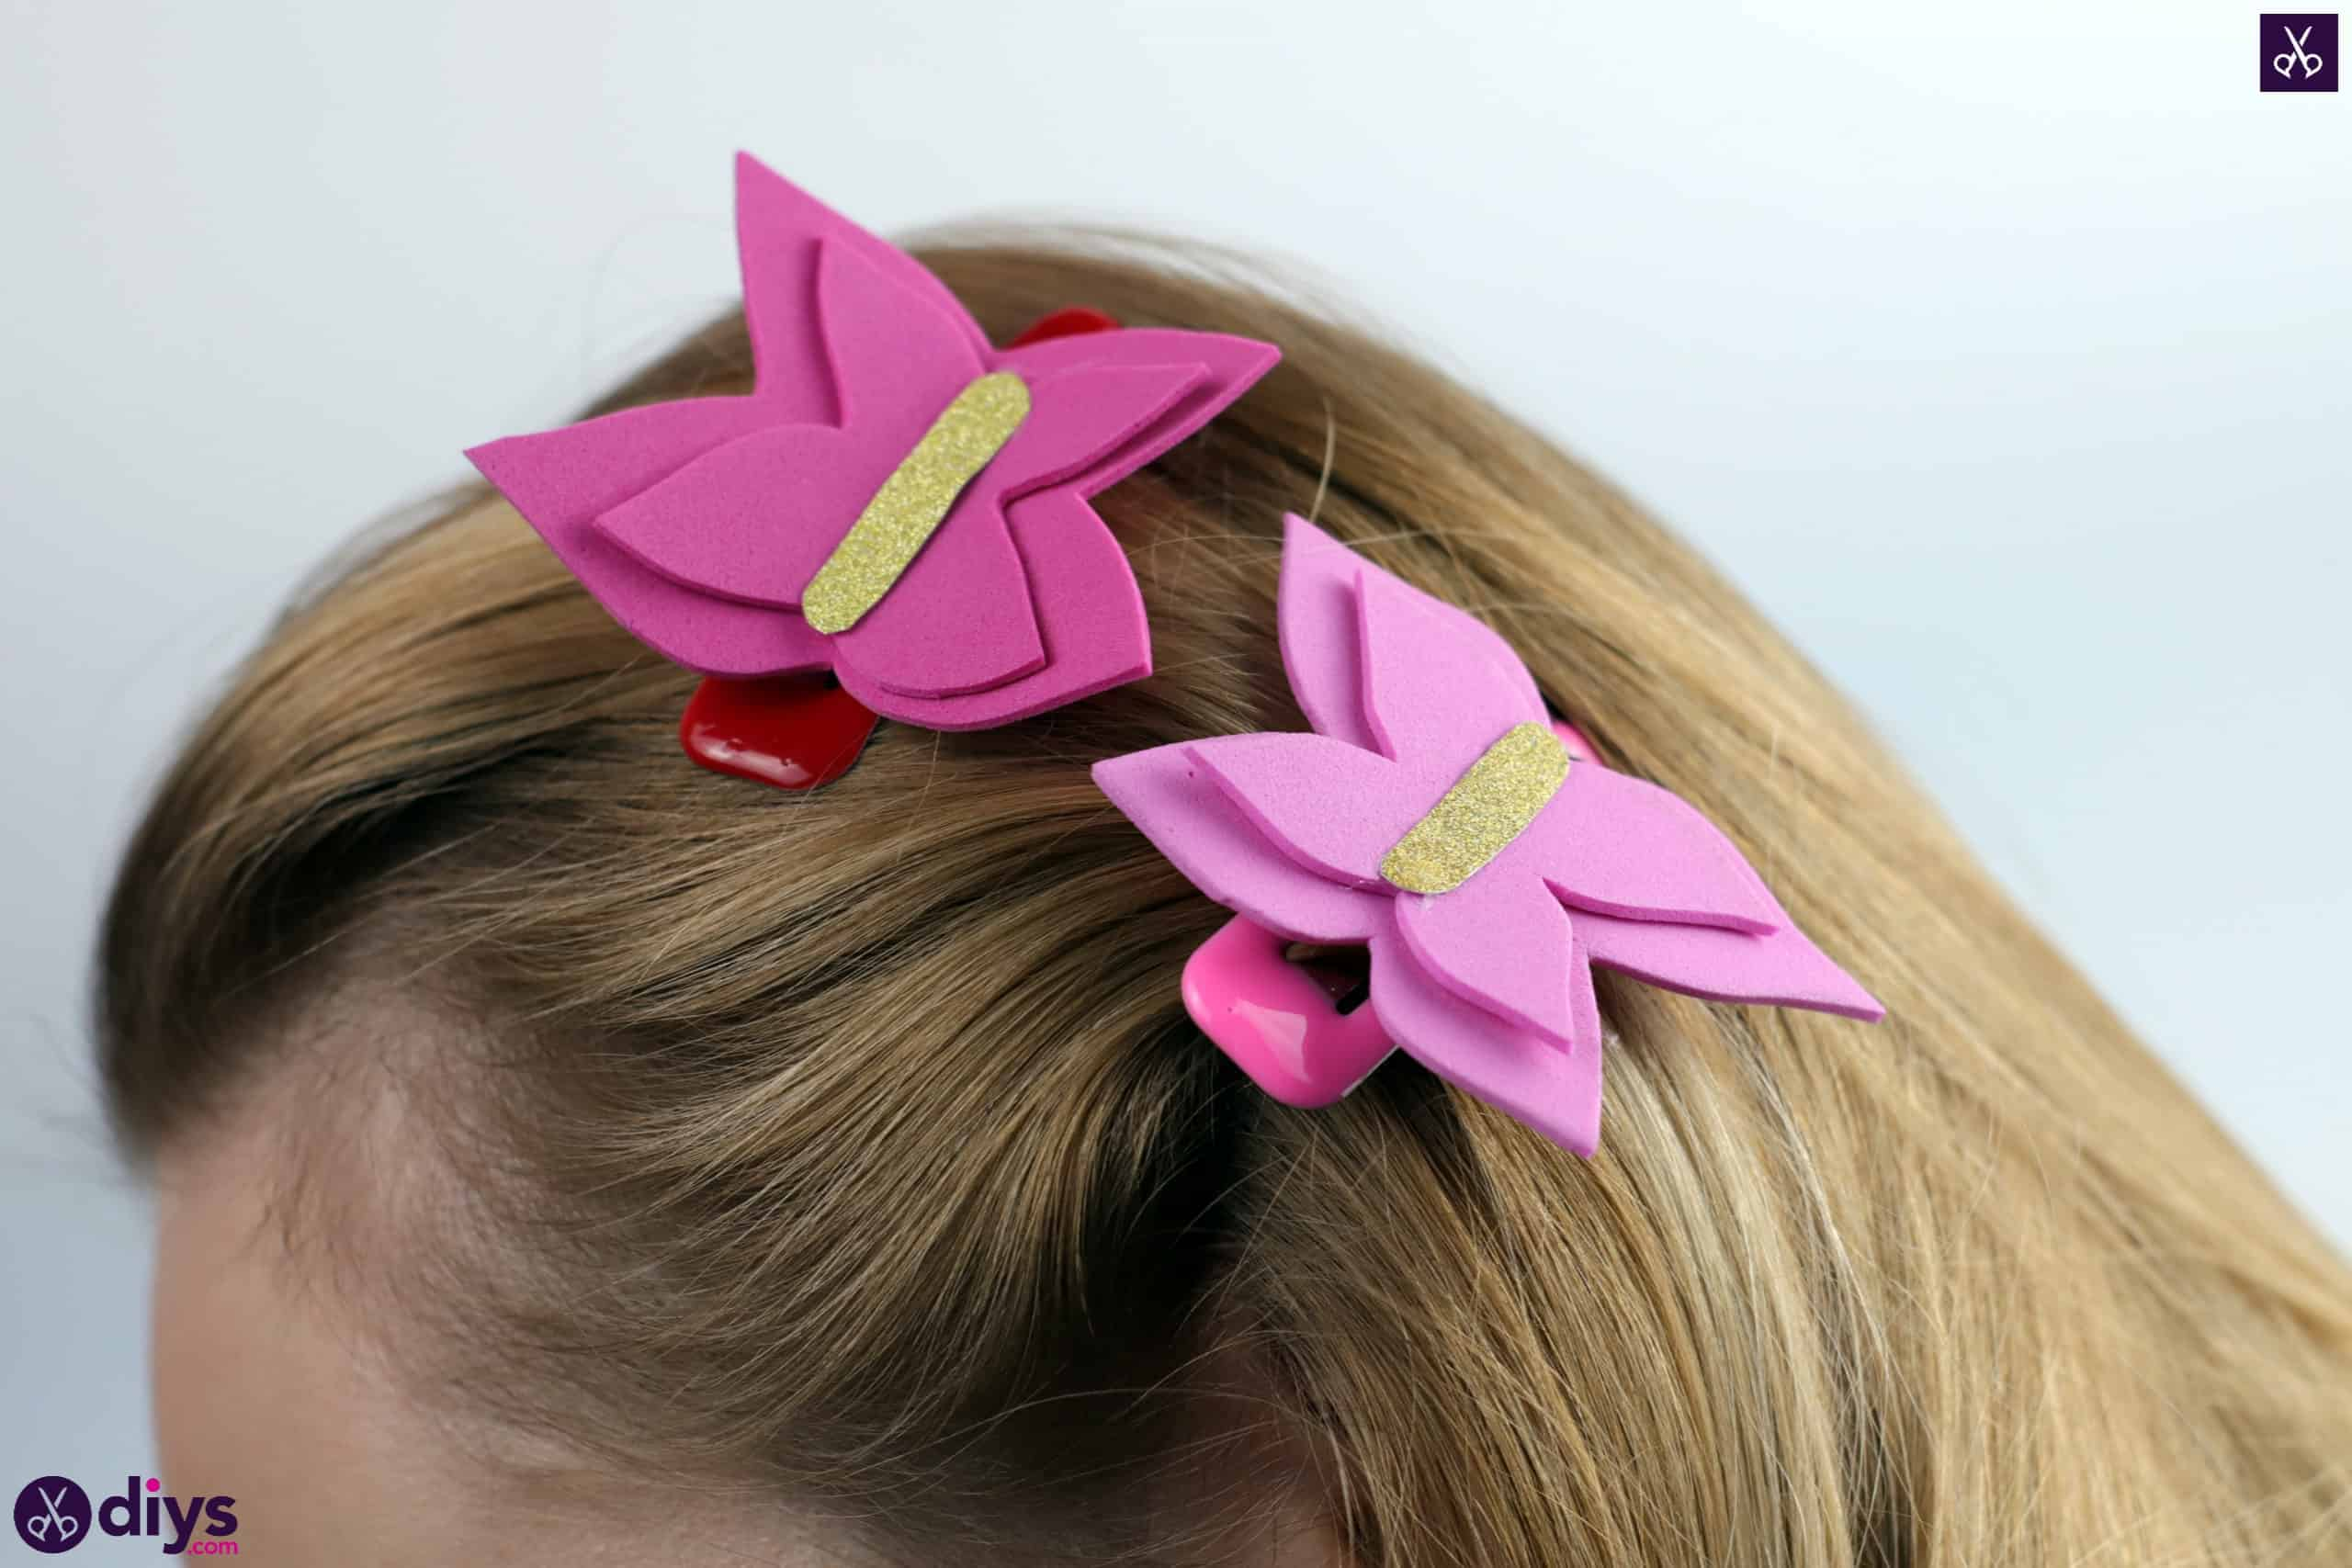 Diy butterfly barrette simple project for fashion